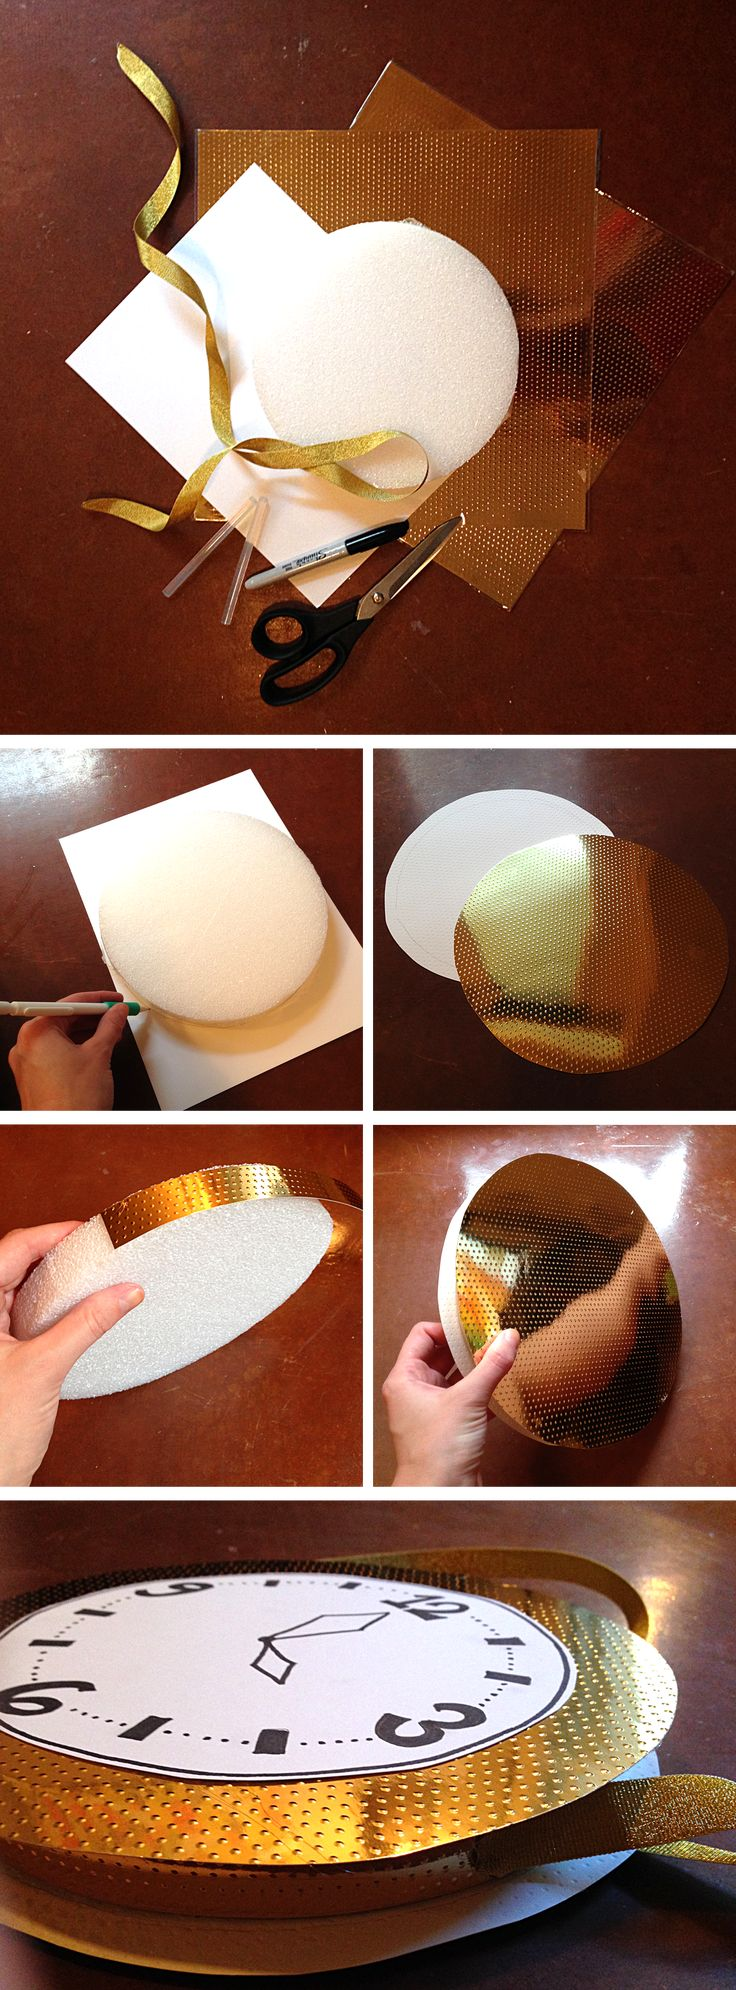 Glitzy Clock Tutorial by Bunny Baubles